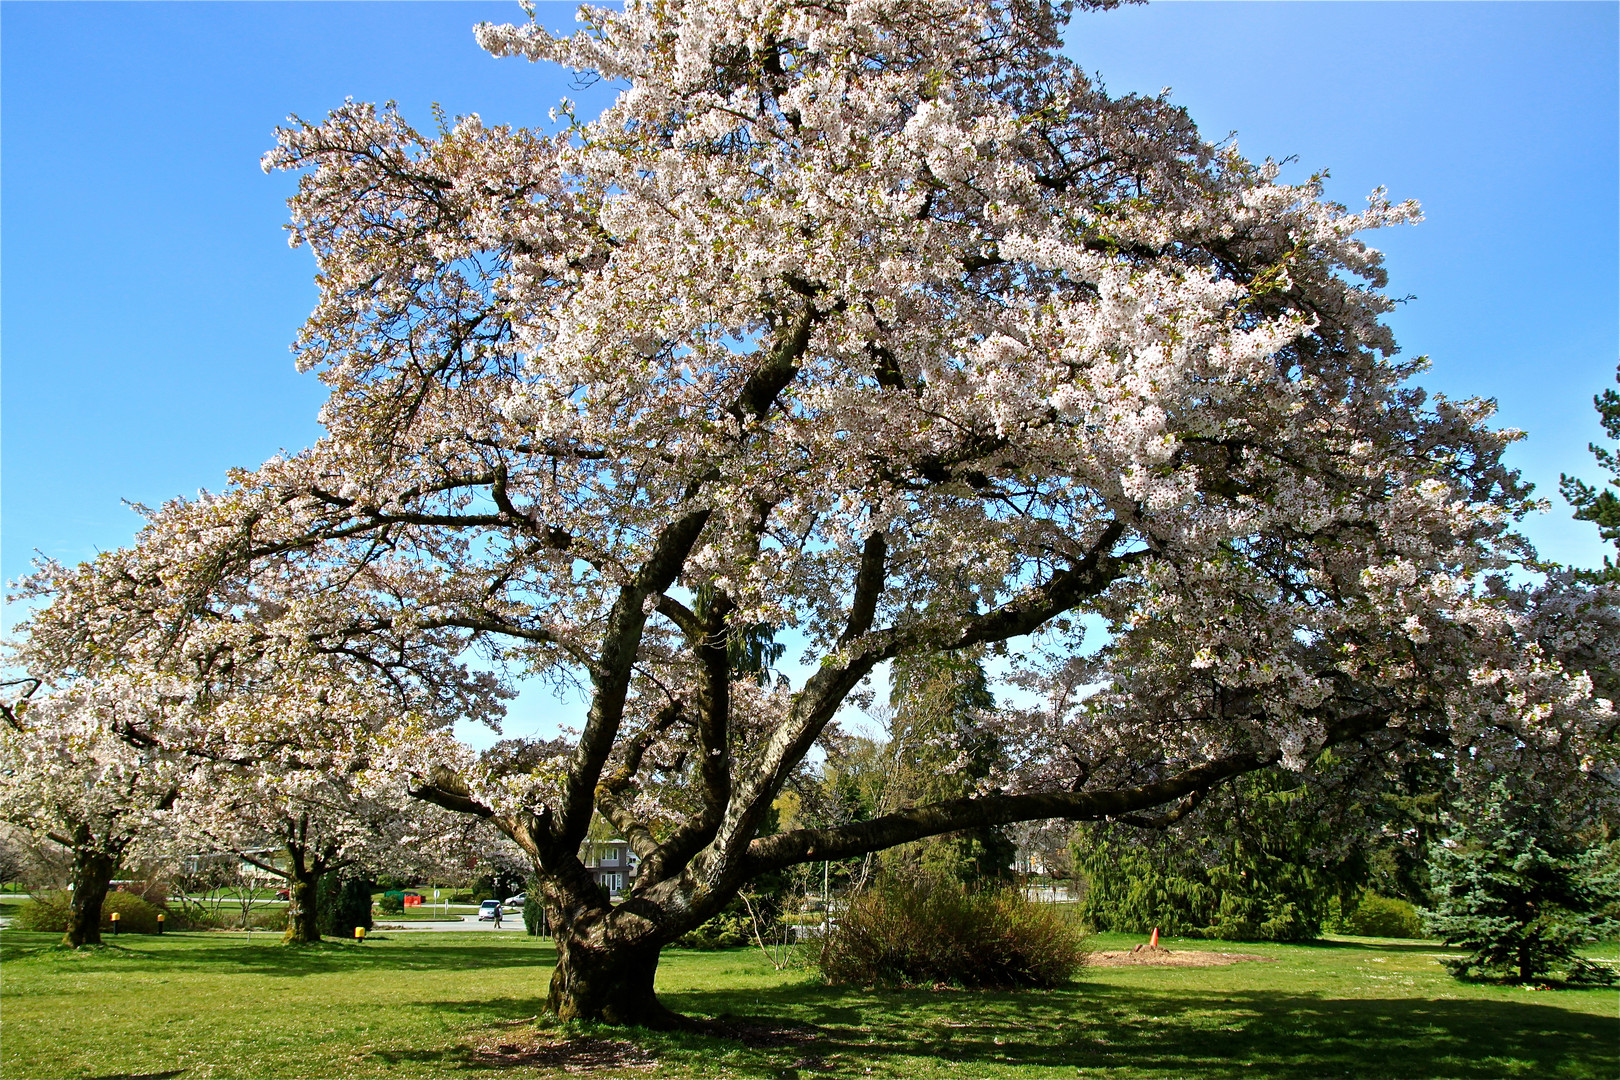 Spring in Vancouver - Cherry Tree